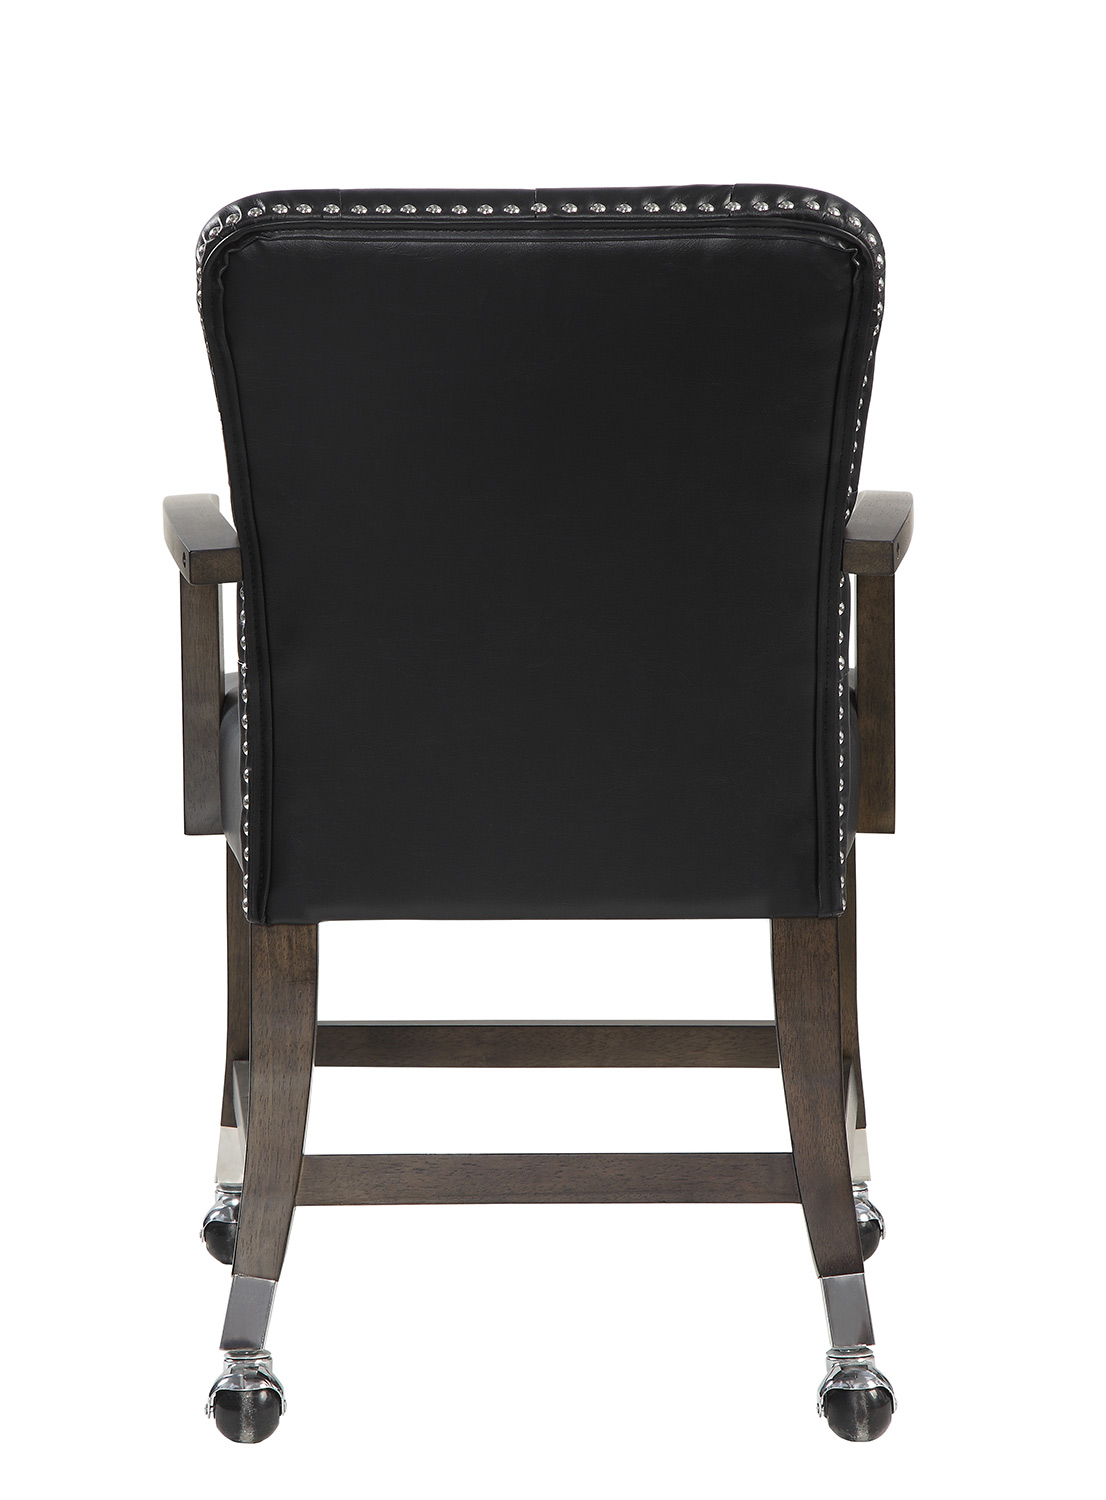 Homelegance Ante Tufted Arm Chair with Casters - Dark Brown